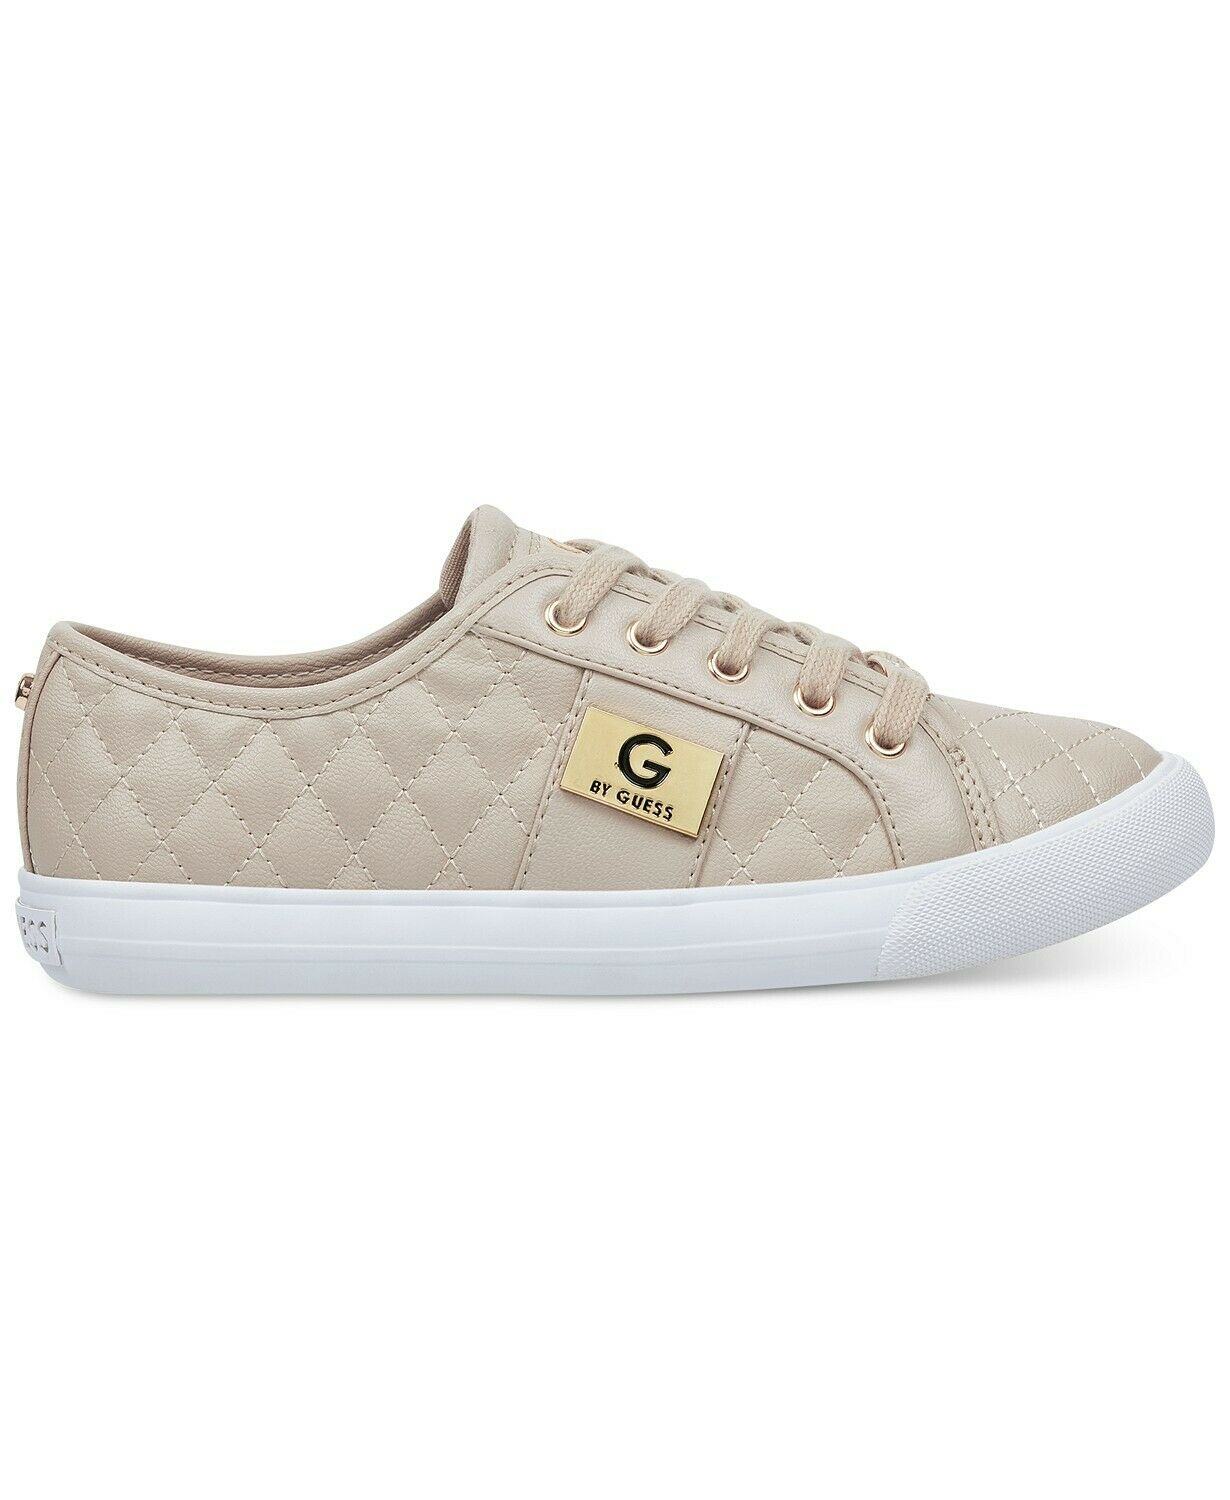 G by Guess Women's Lace Up Leather Quilted Pattern Sneakers shoes Light Natural